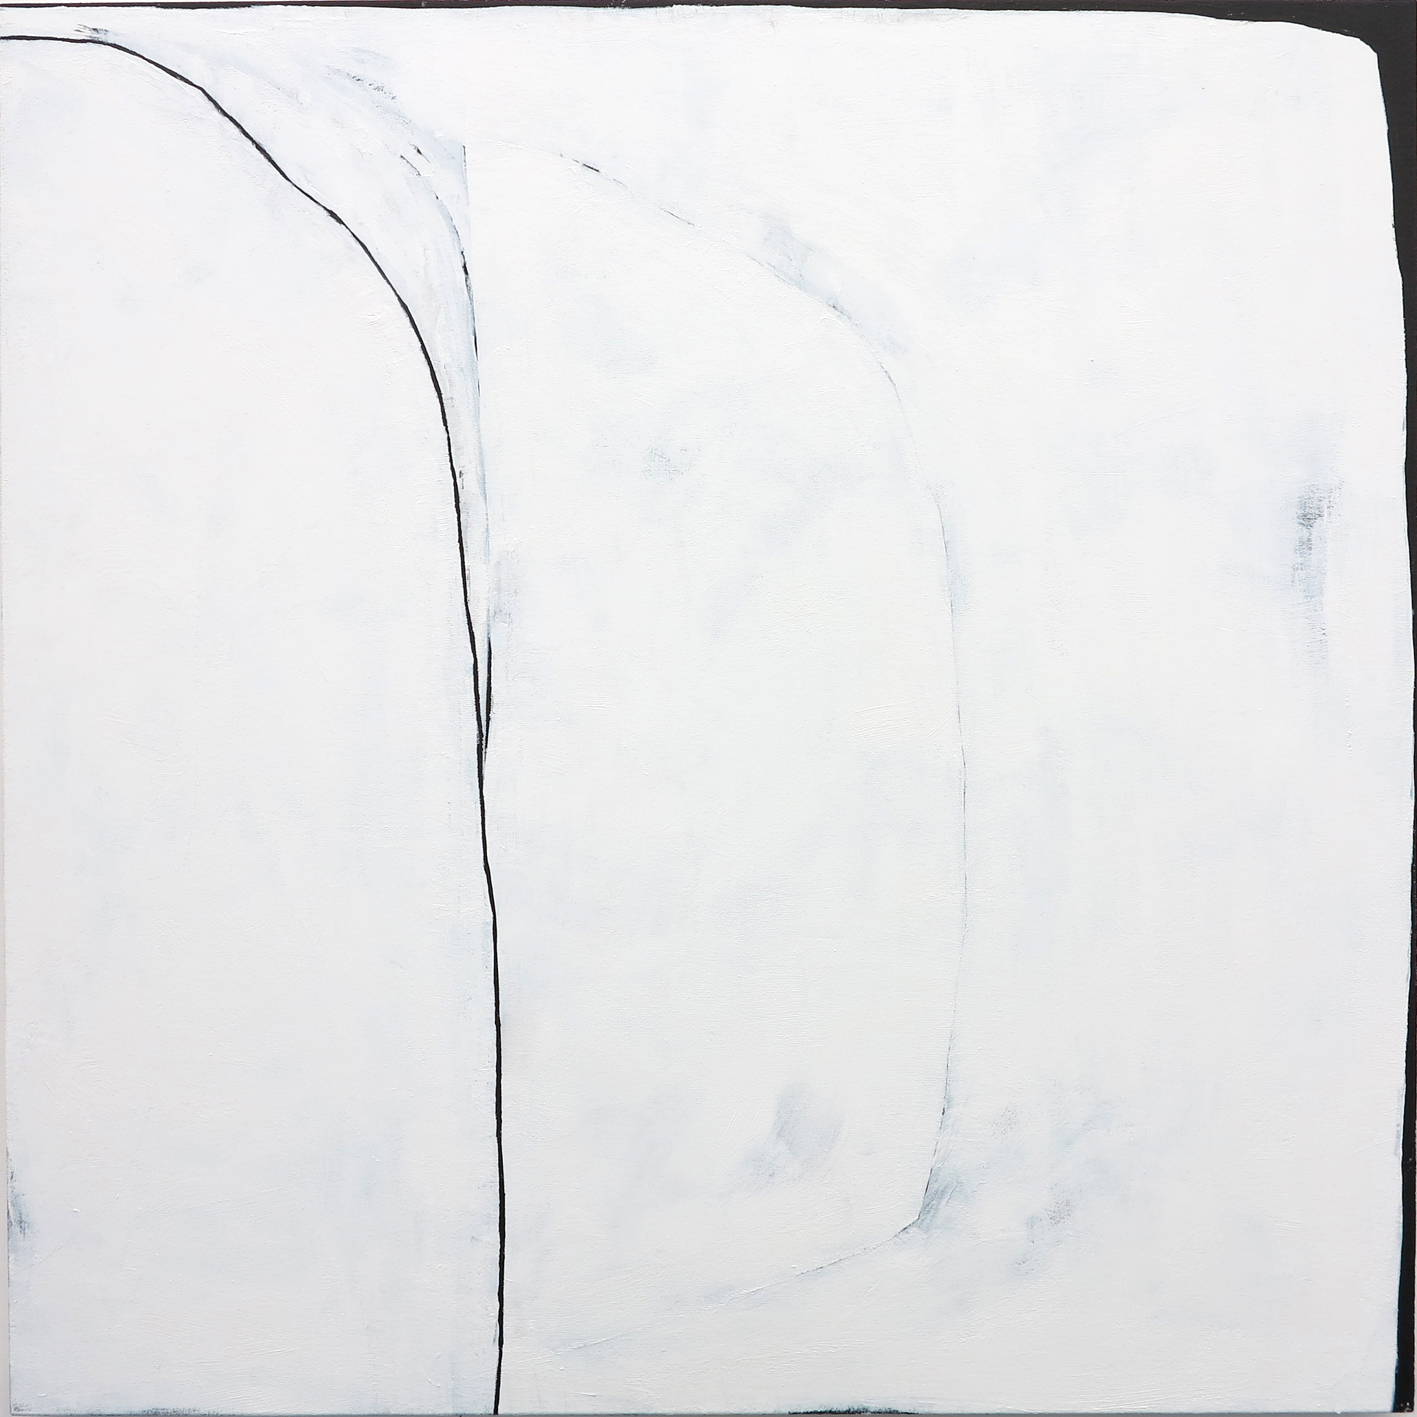 A new white painting, 2016